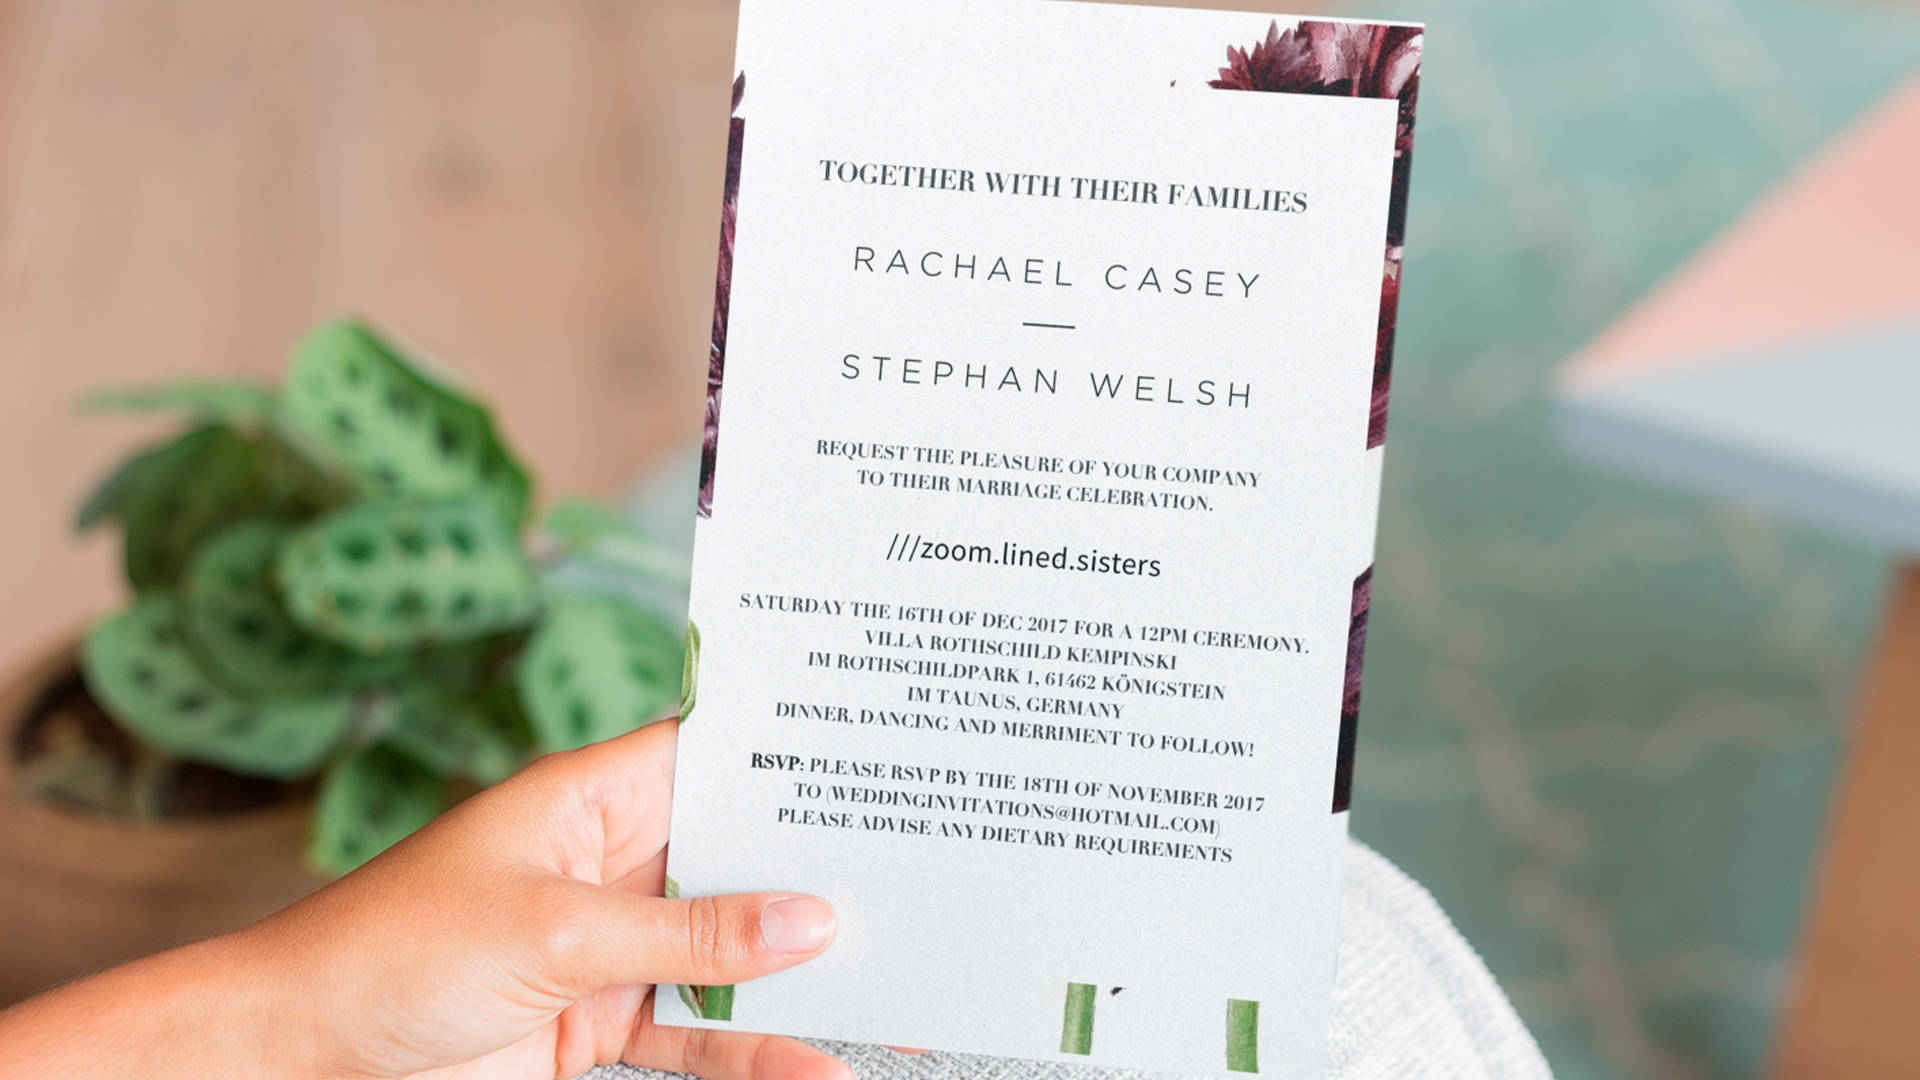 A wedding invitation with a what 3 words address on it